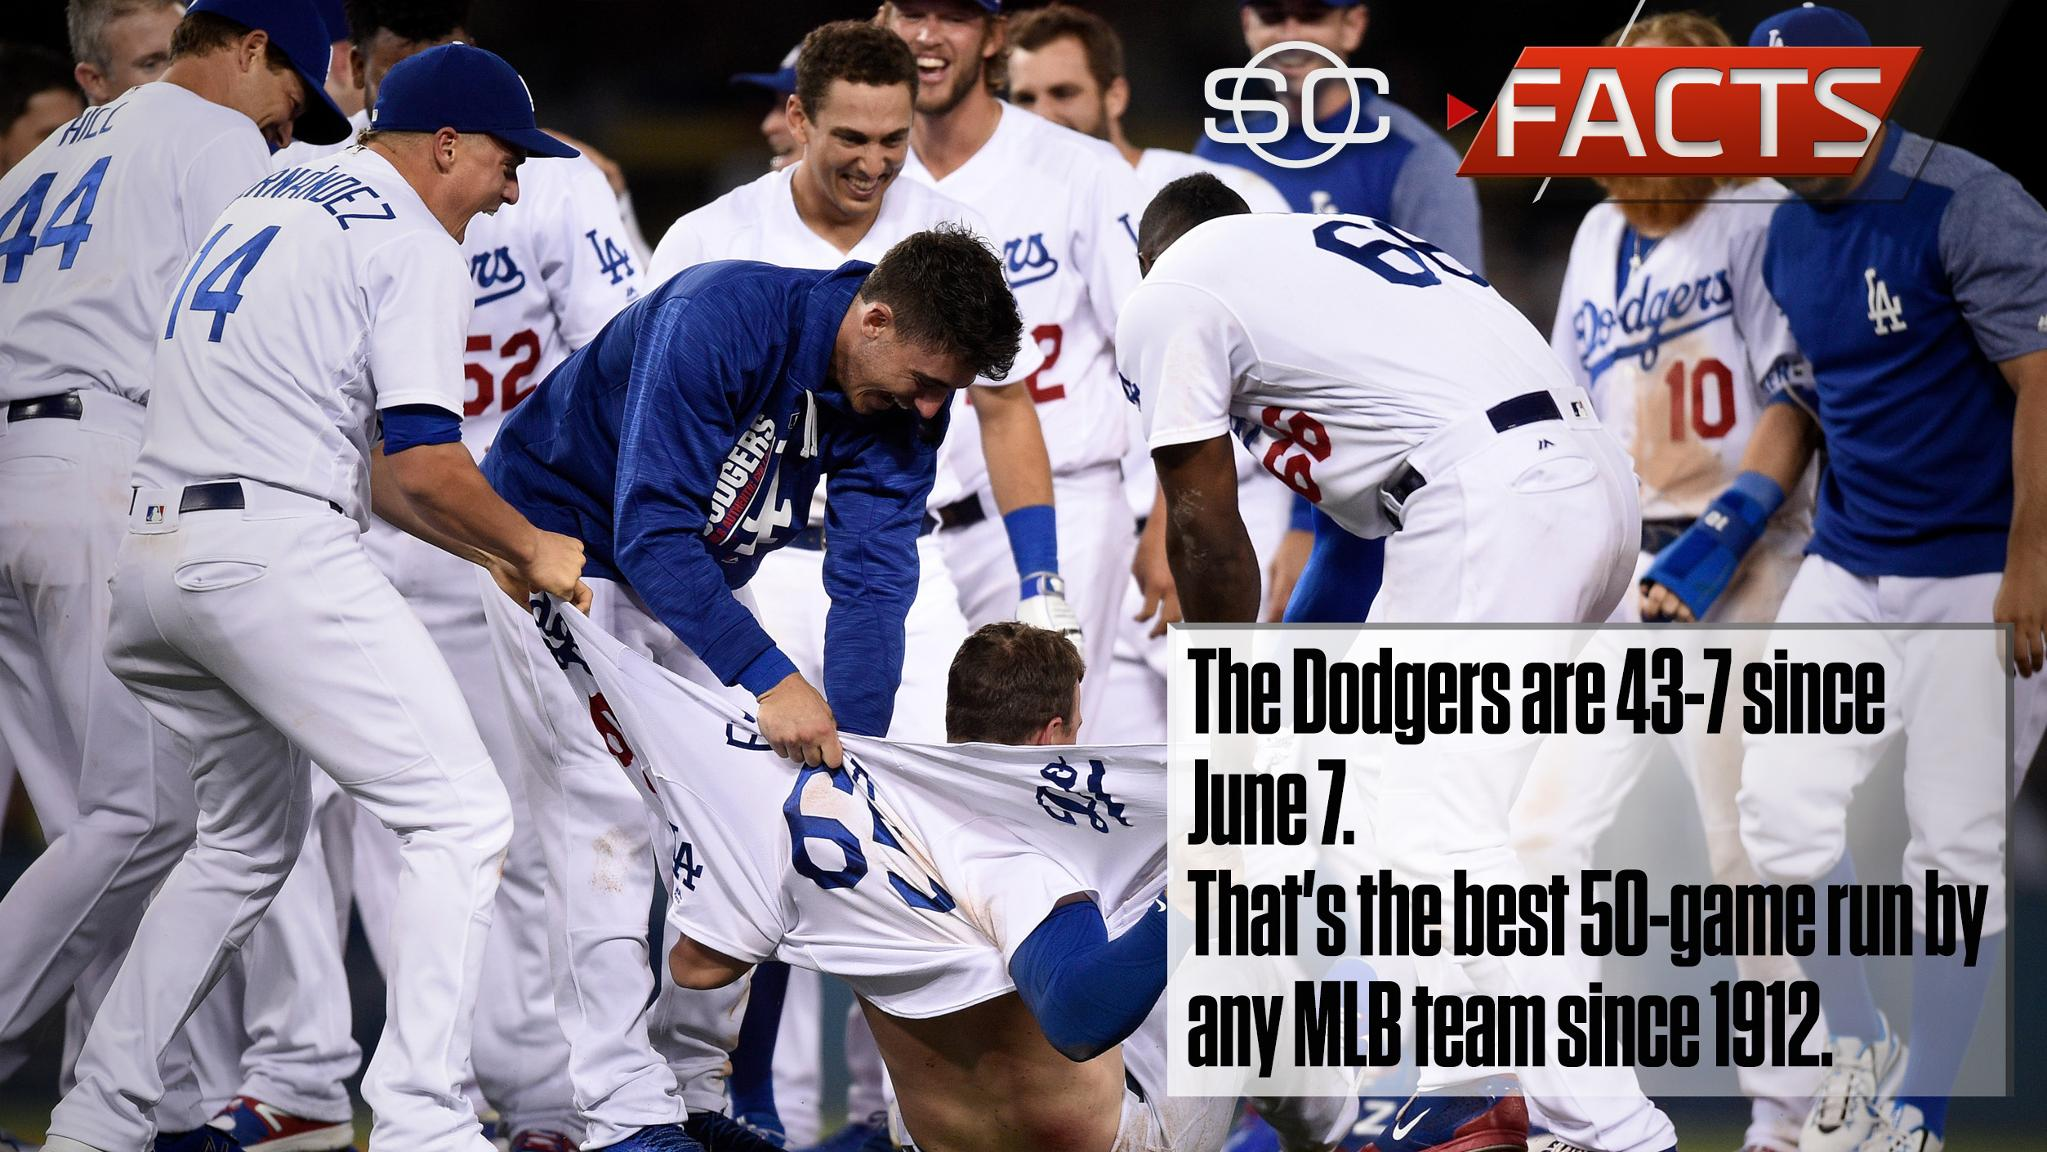 The Dodgers cannot be stopped. #SCFacts https://t.co/01XIE0mJwm